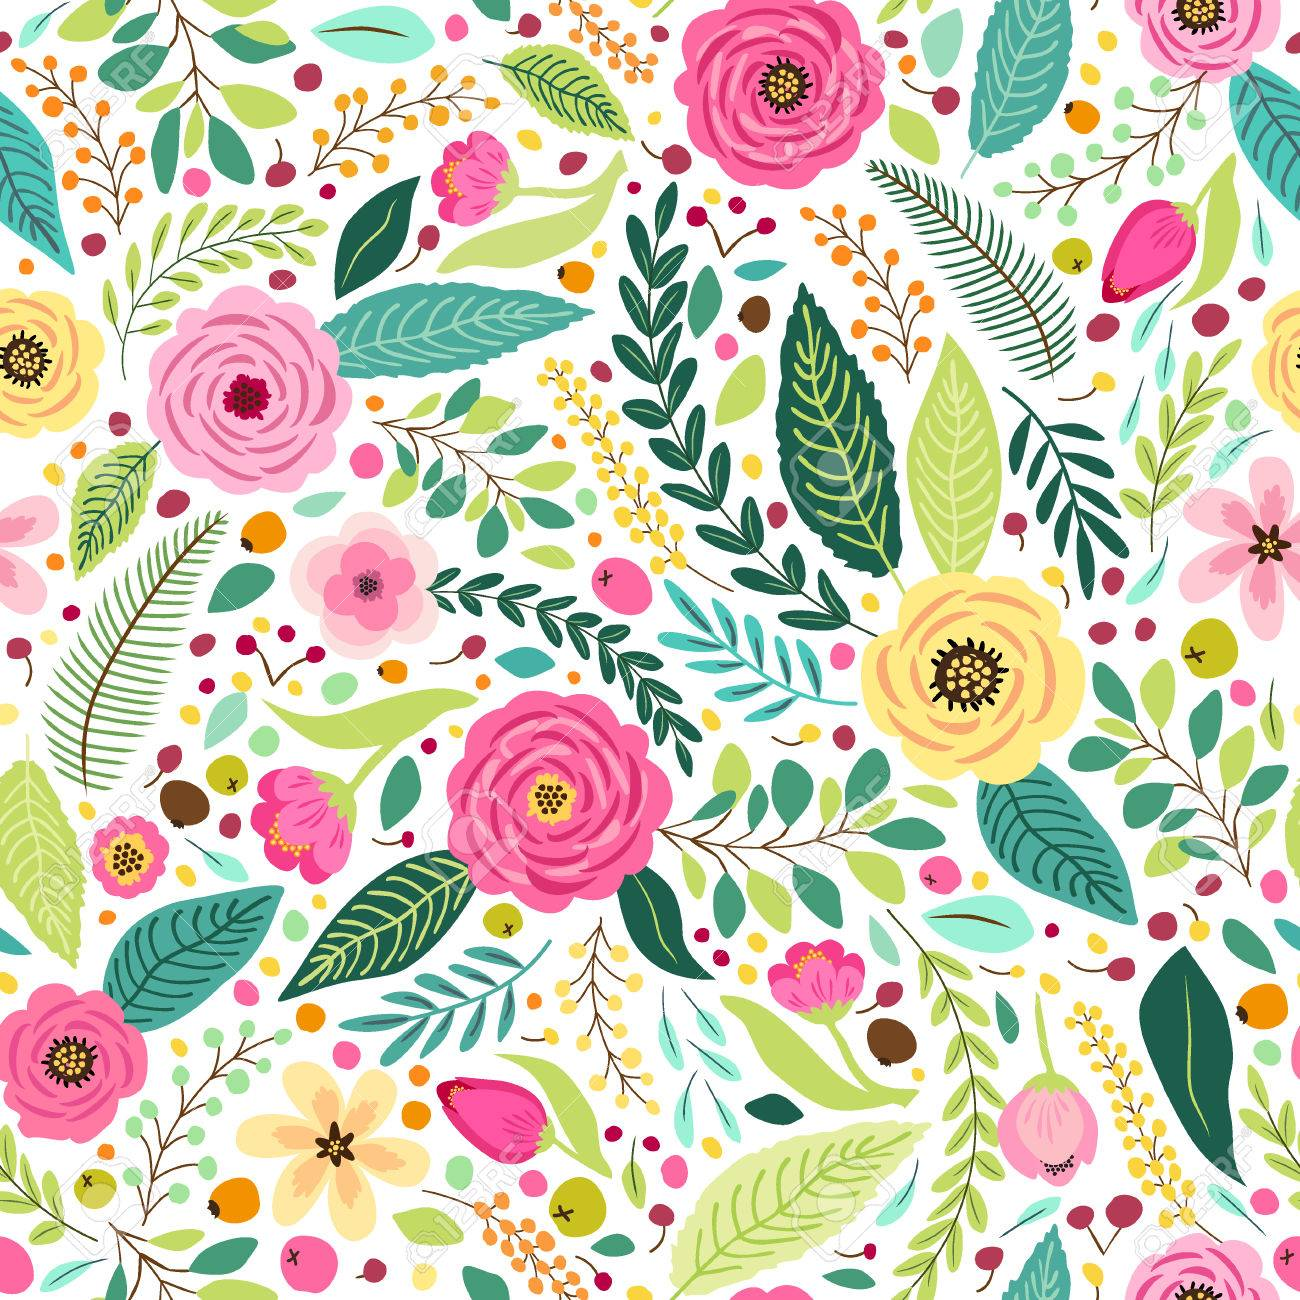 Cute seamless pattern with rustic hand drawn first spring flowers - 80561592